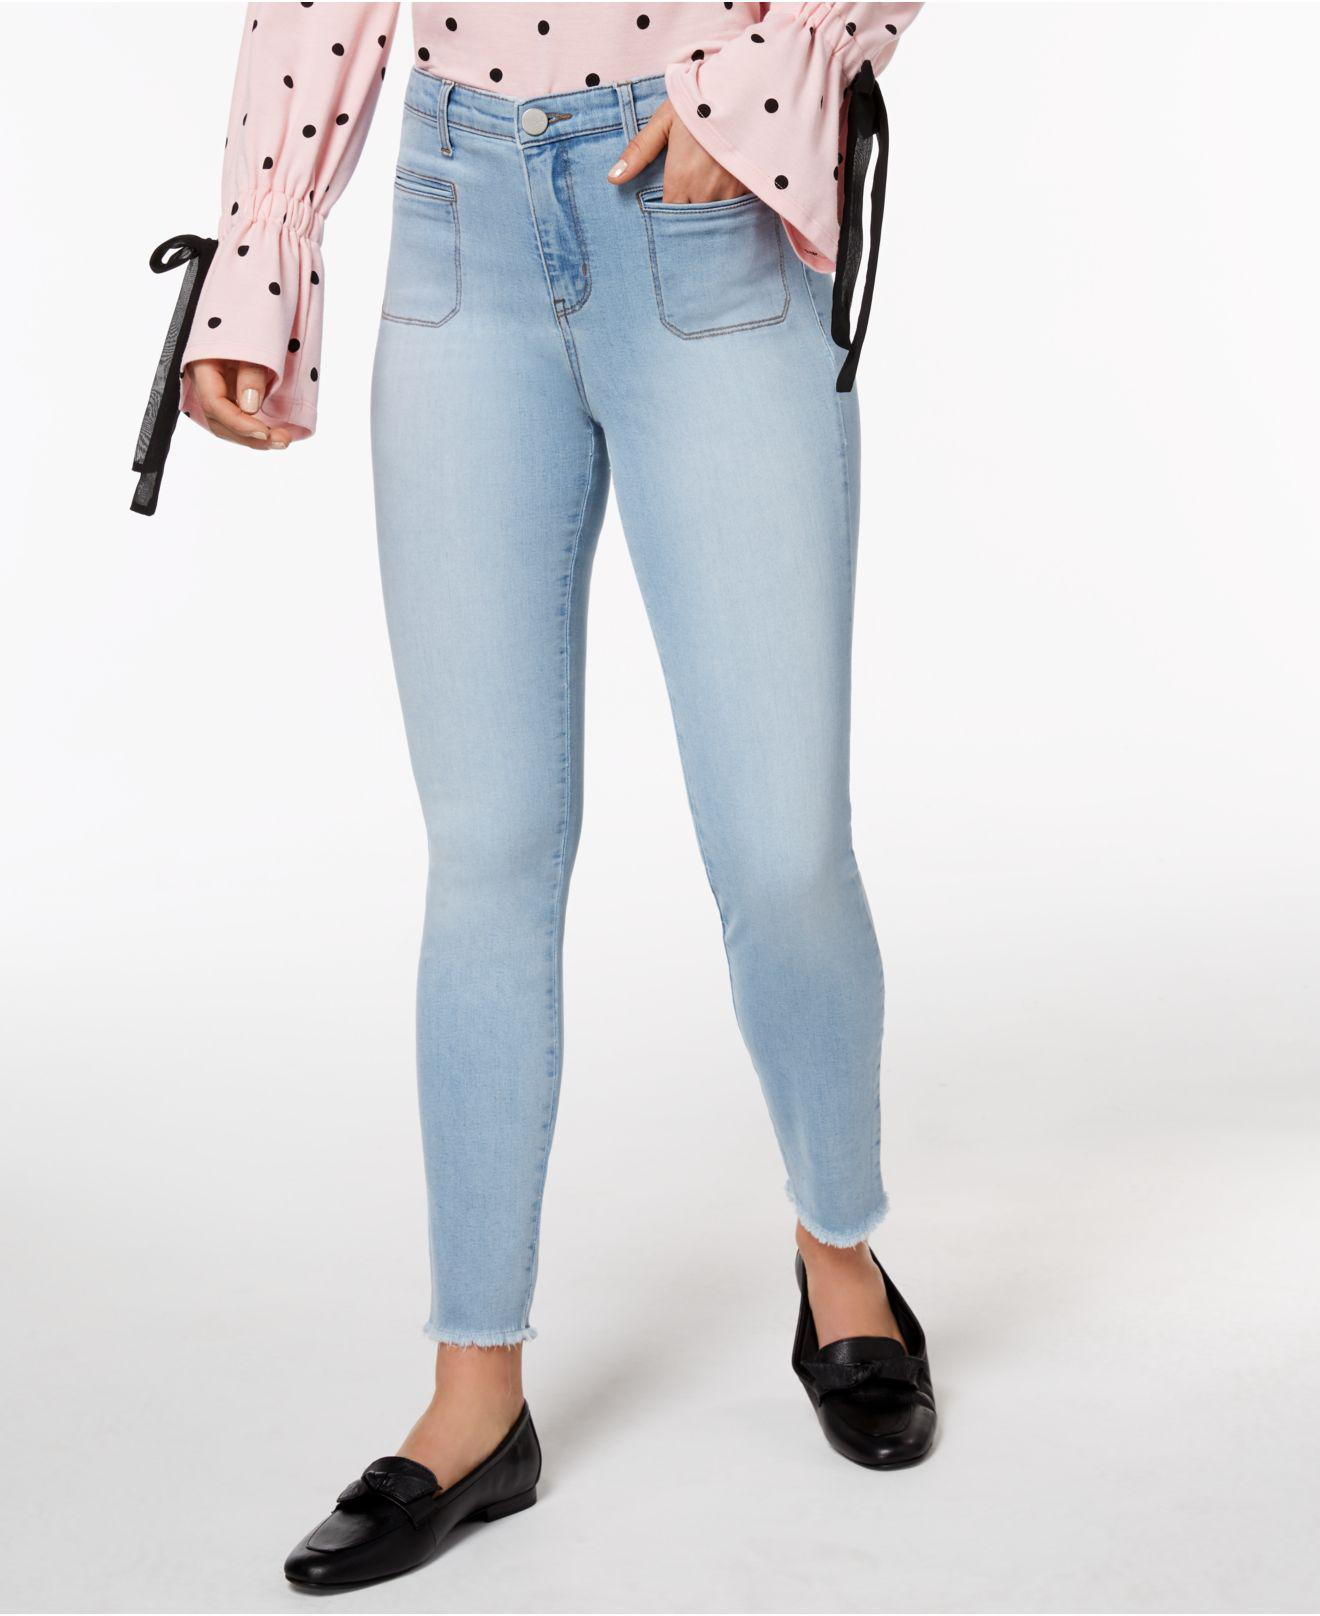 92d44f312cd Maison Jules Frayed Skinny Jeans, Created For Macy's in Blue - Lyst